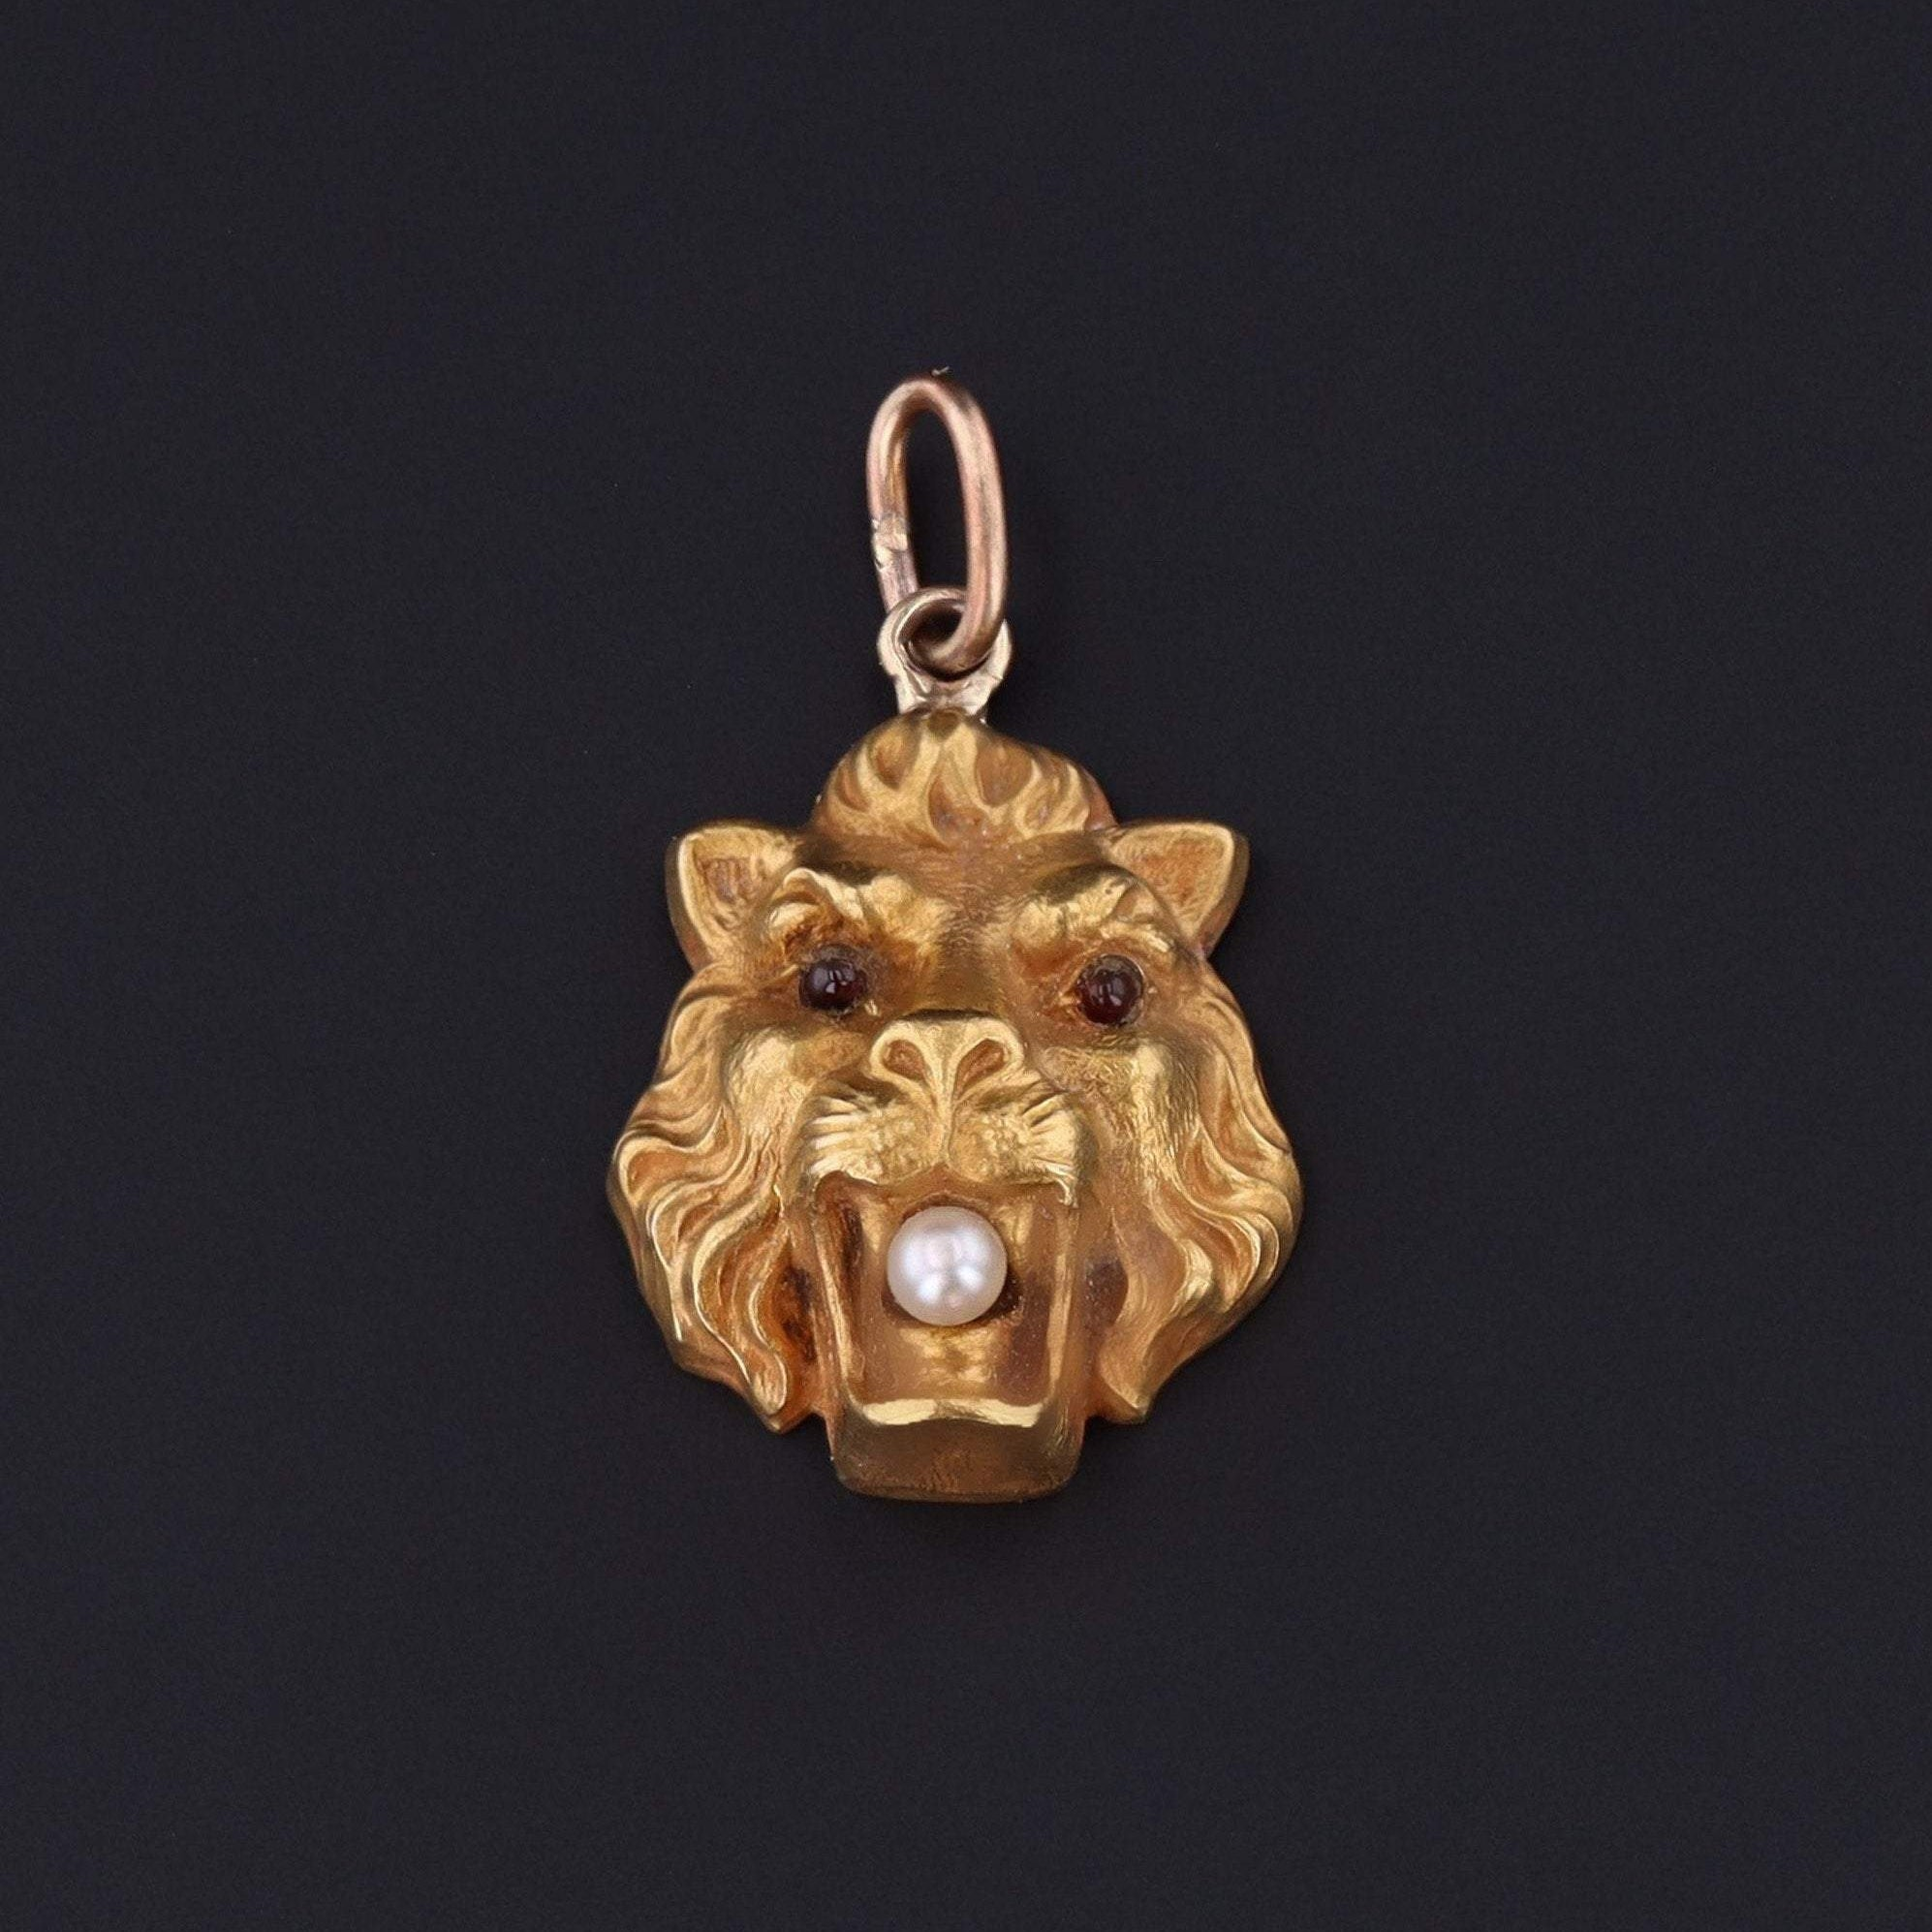 Antique Lion Charm | Pin Conversion | 14k Gold Charm | 14k Gold Lion Charm with Pearl